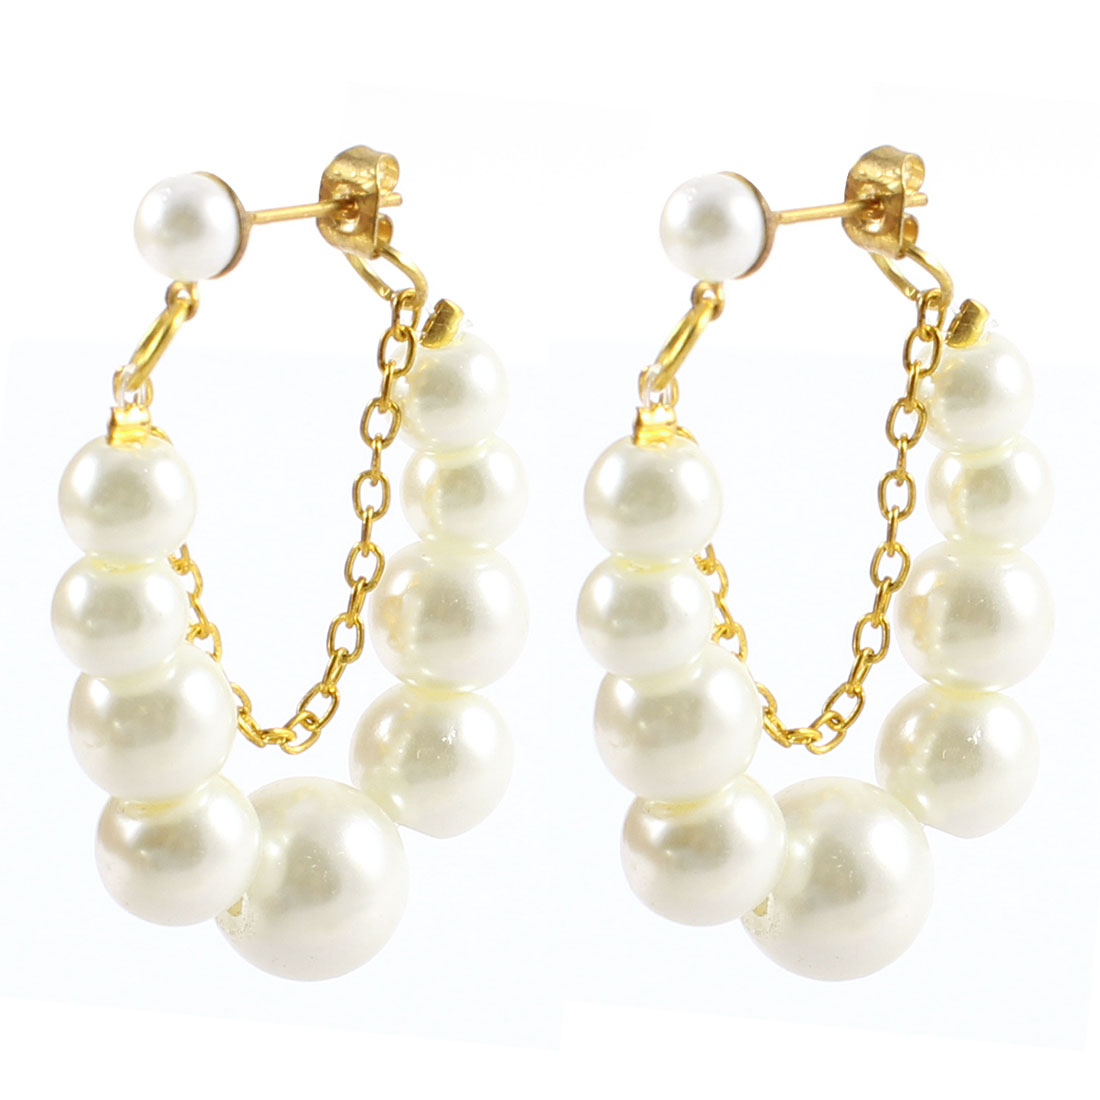 2 Pcs White Plastic Beads Decor Round Shape Hoop Earrings for Woman Girls